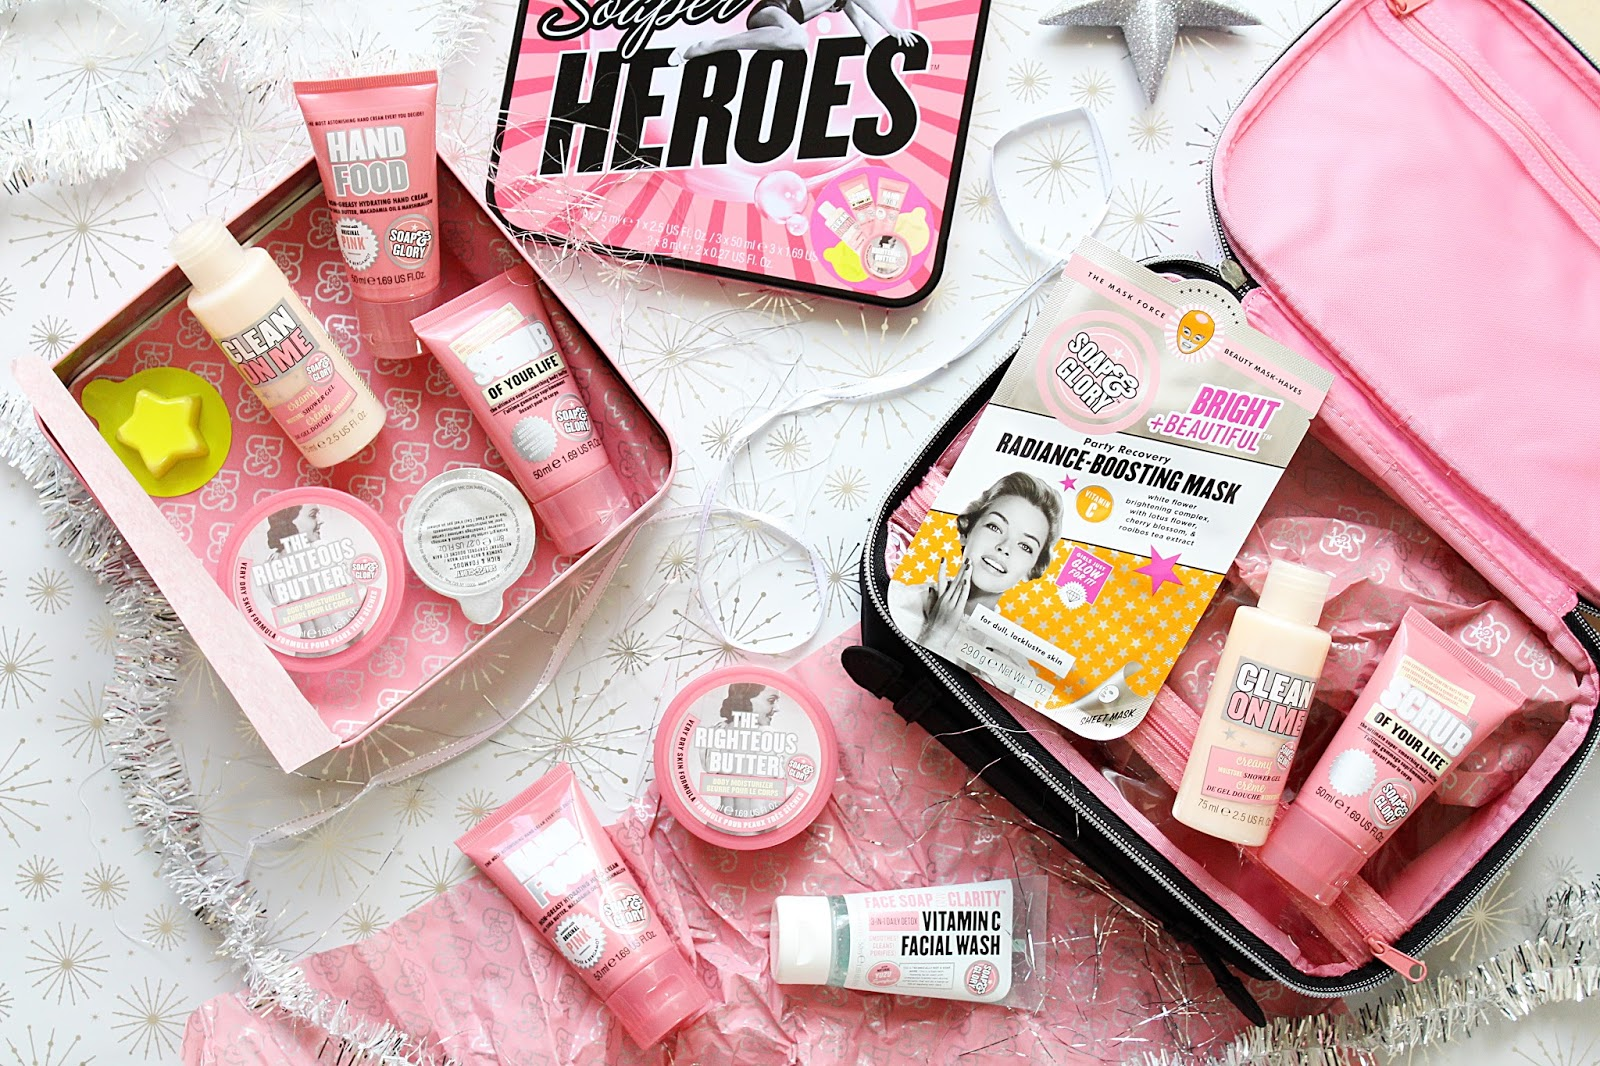 Festive Gift Guide - Soap & Glory Gift Sets From Boots